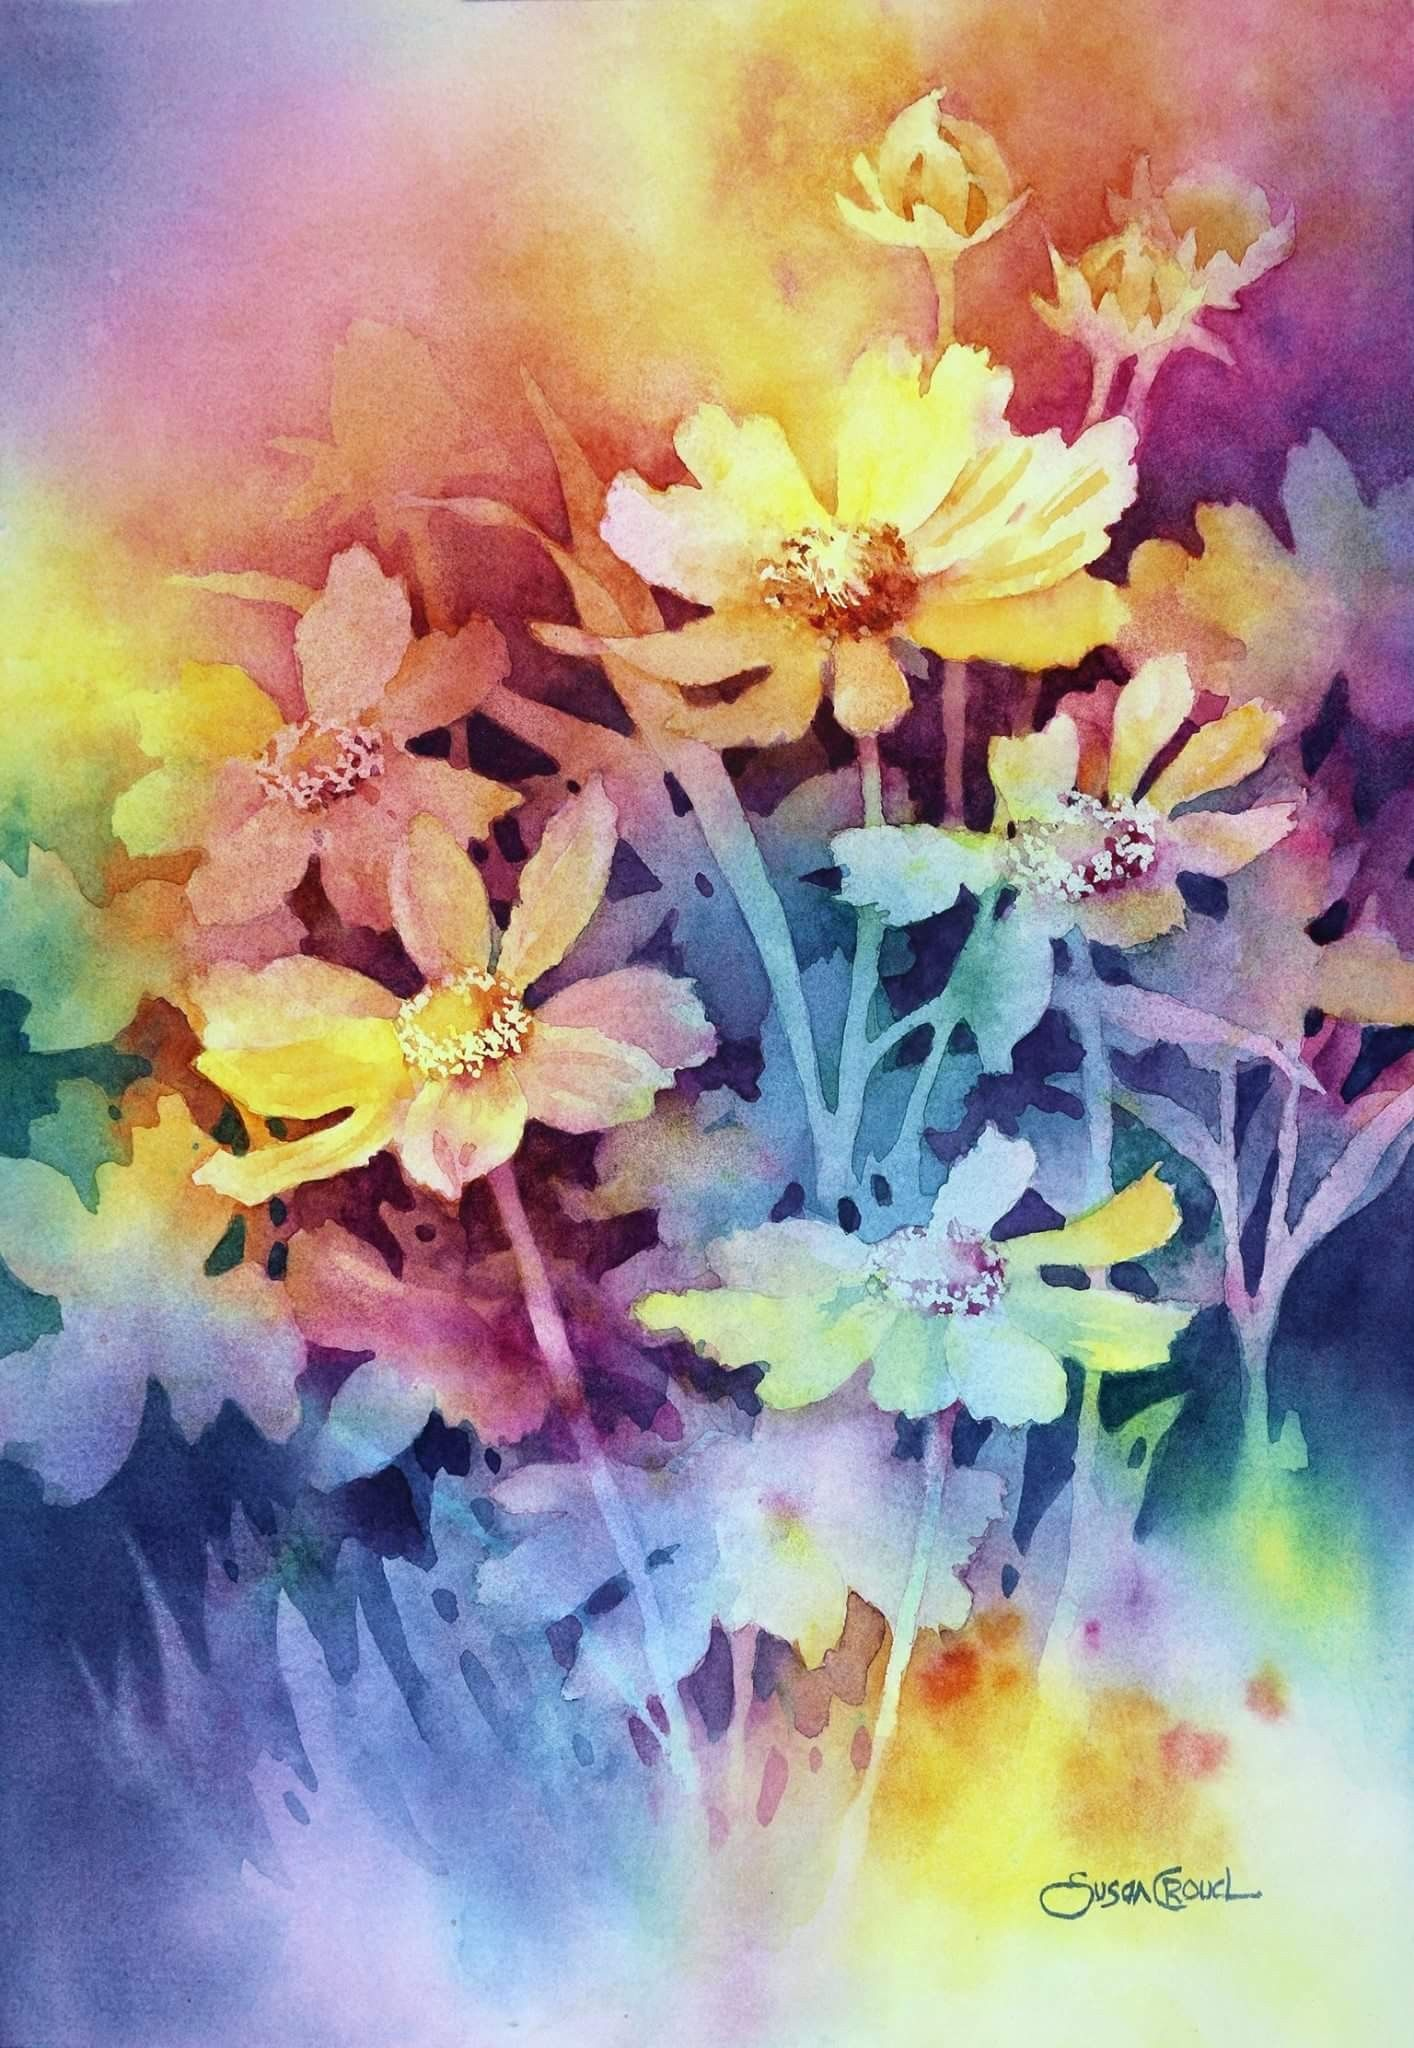 Watercolor Flowers Image By Diane Davis Flower Painting